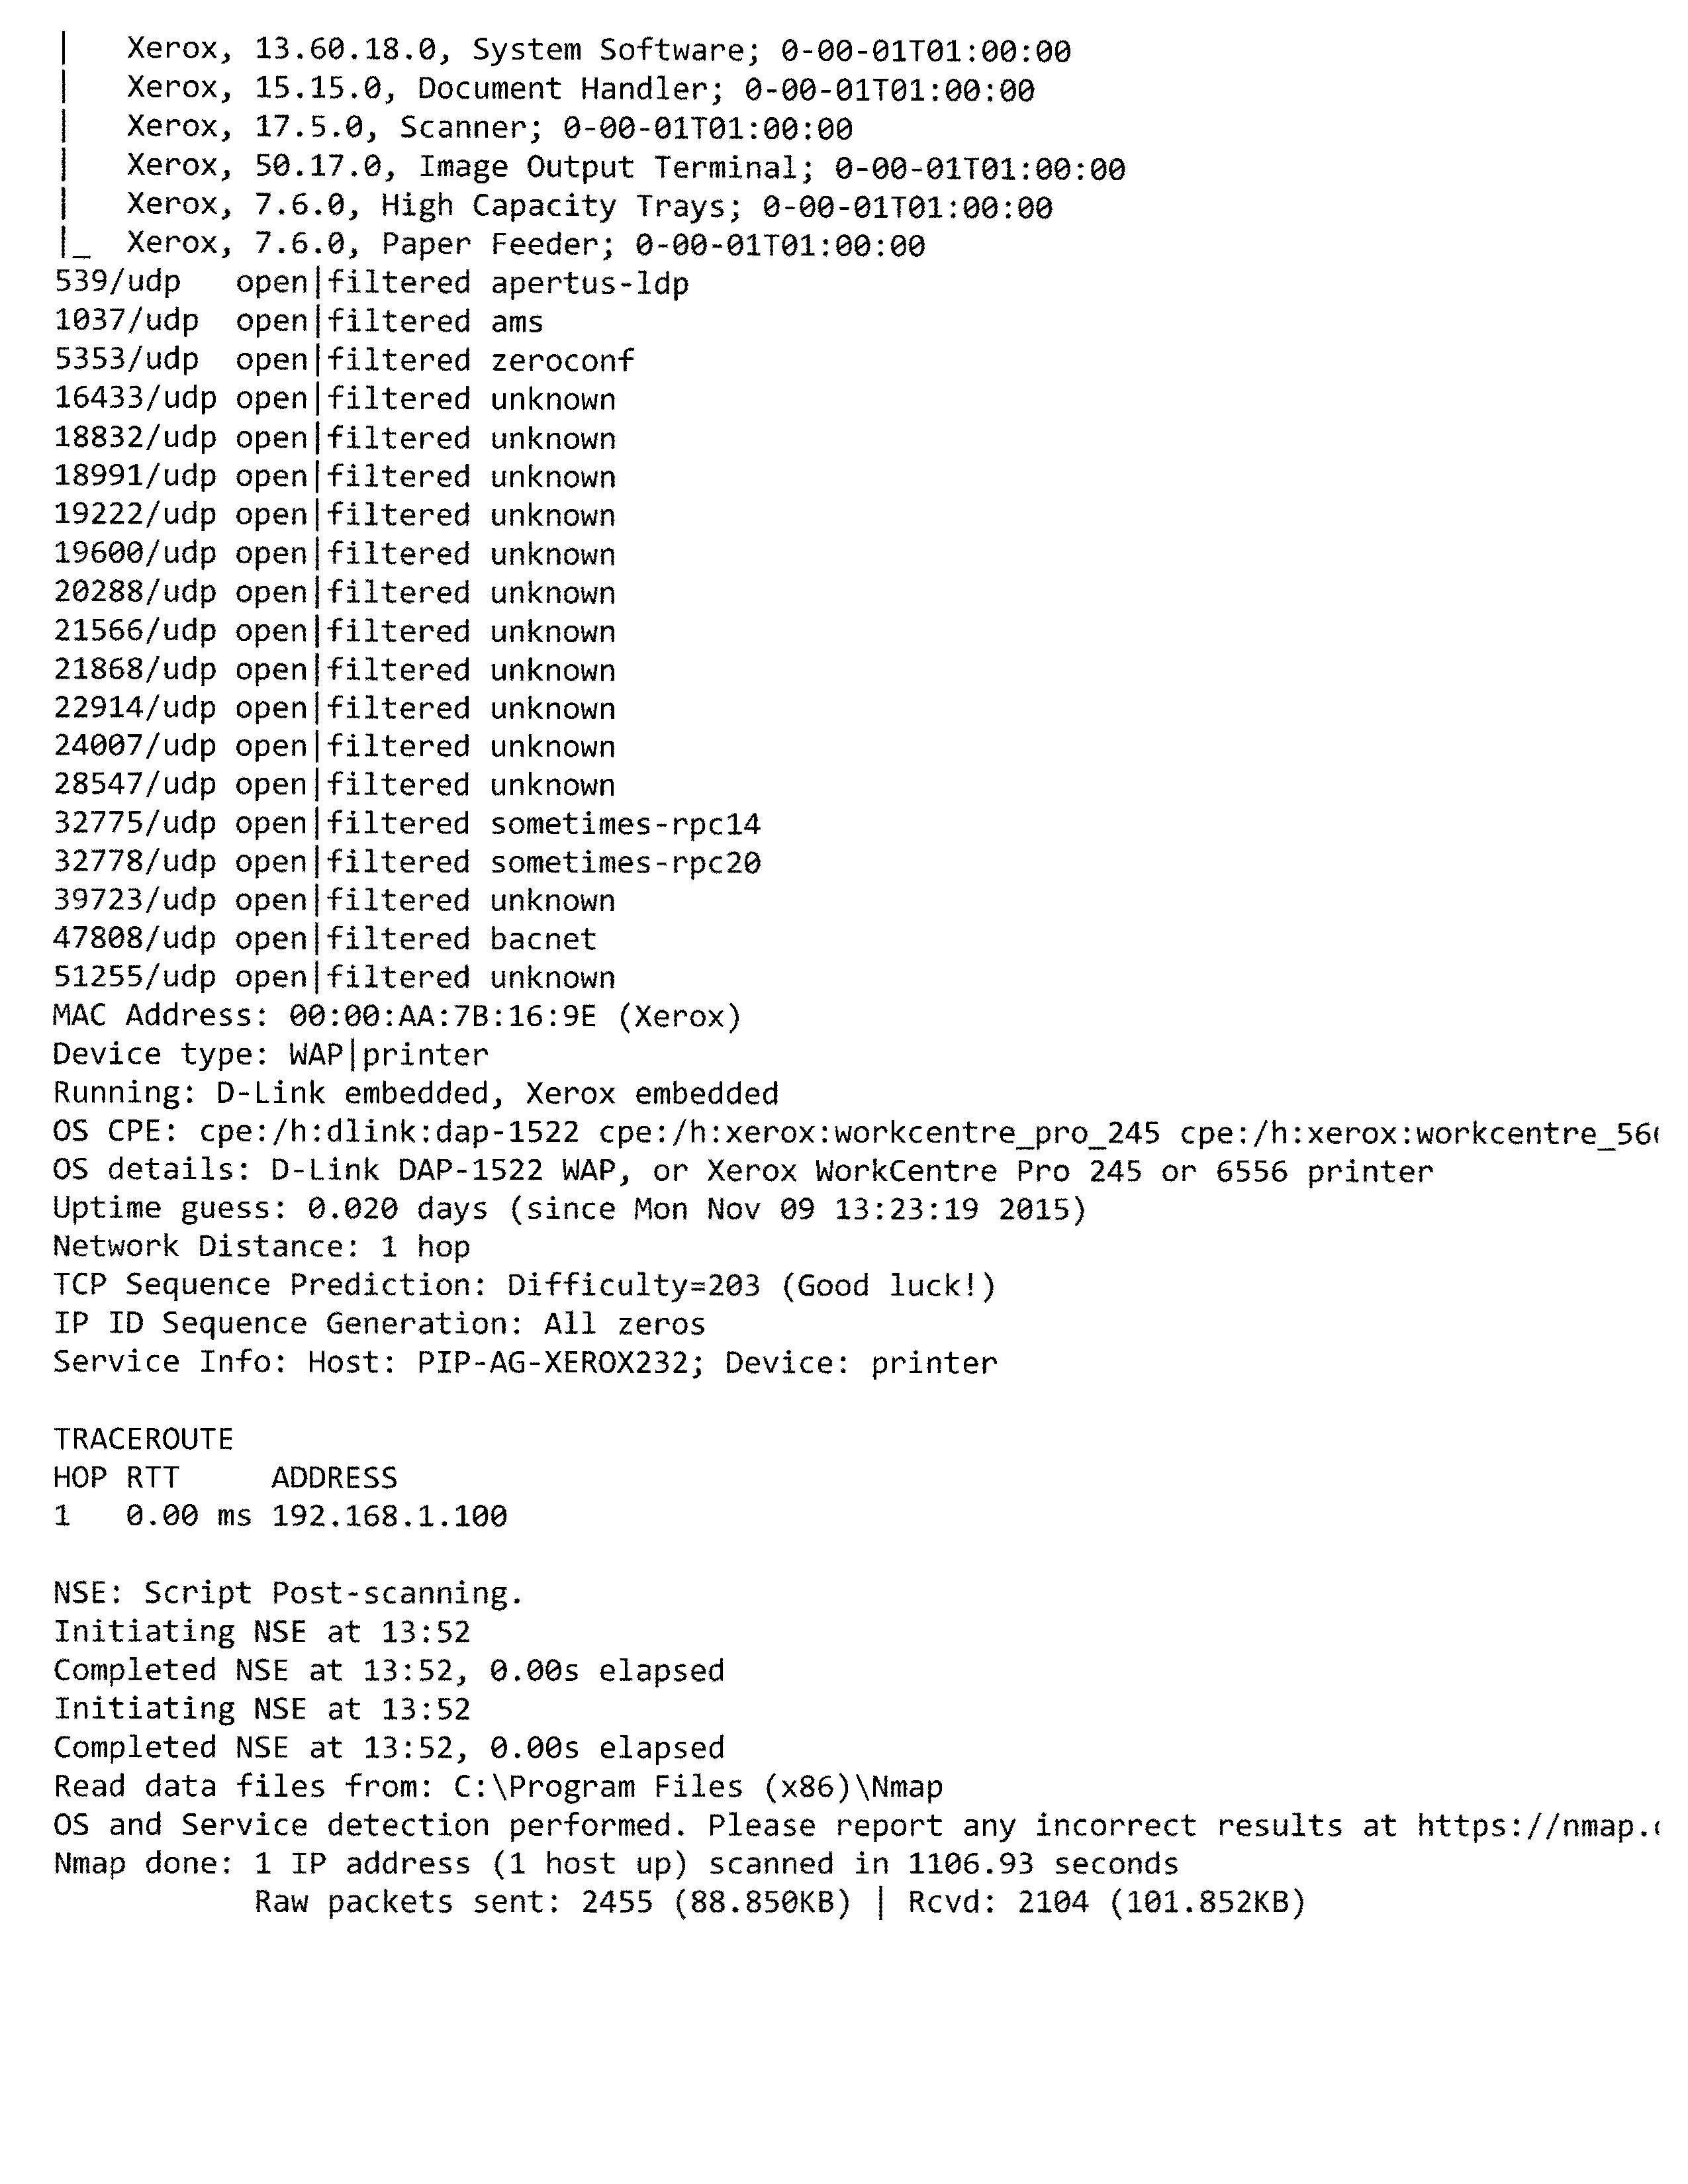 232 report nmap_Page_3.png